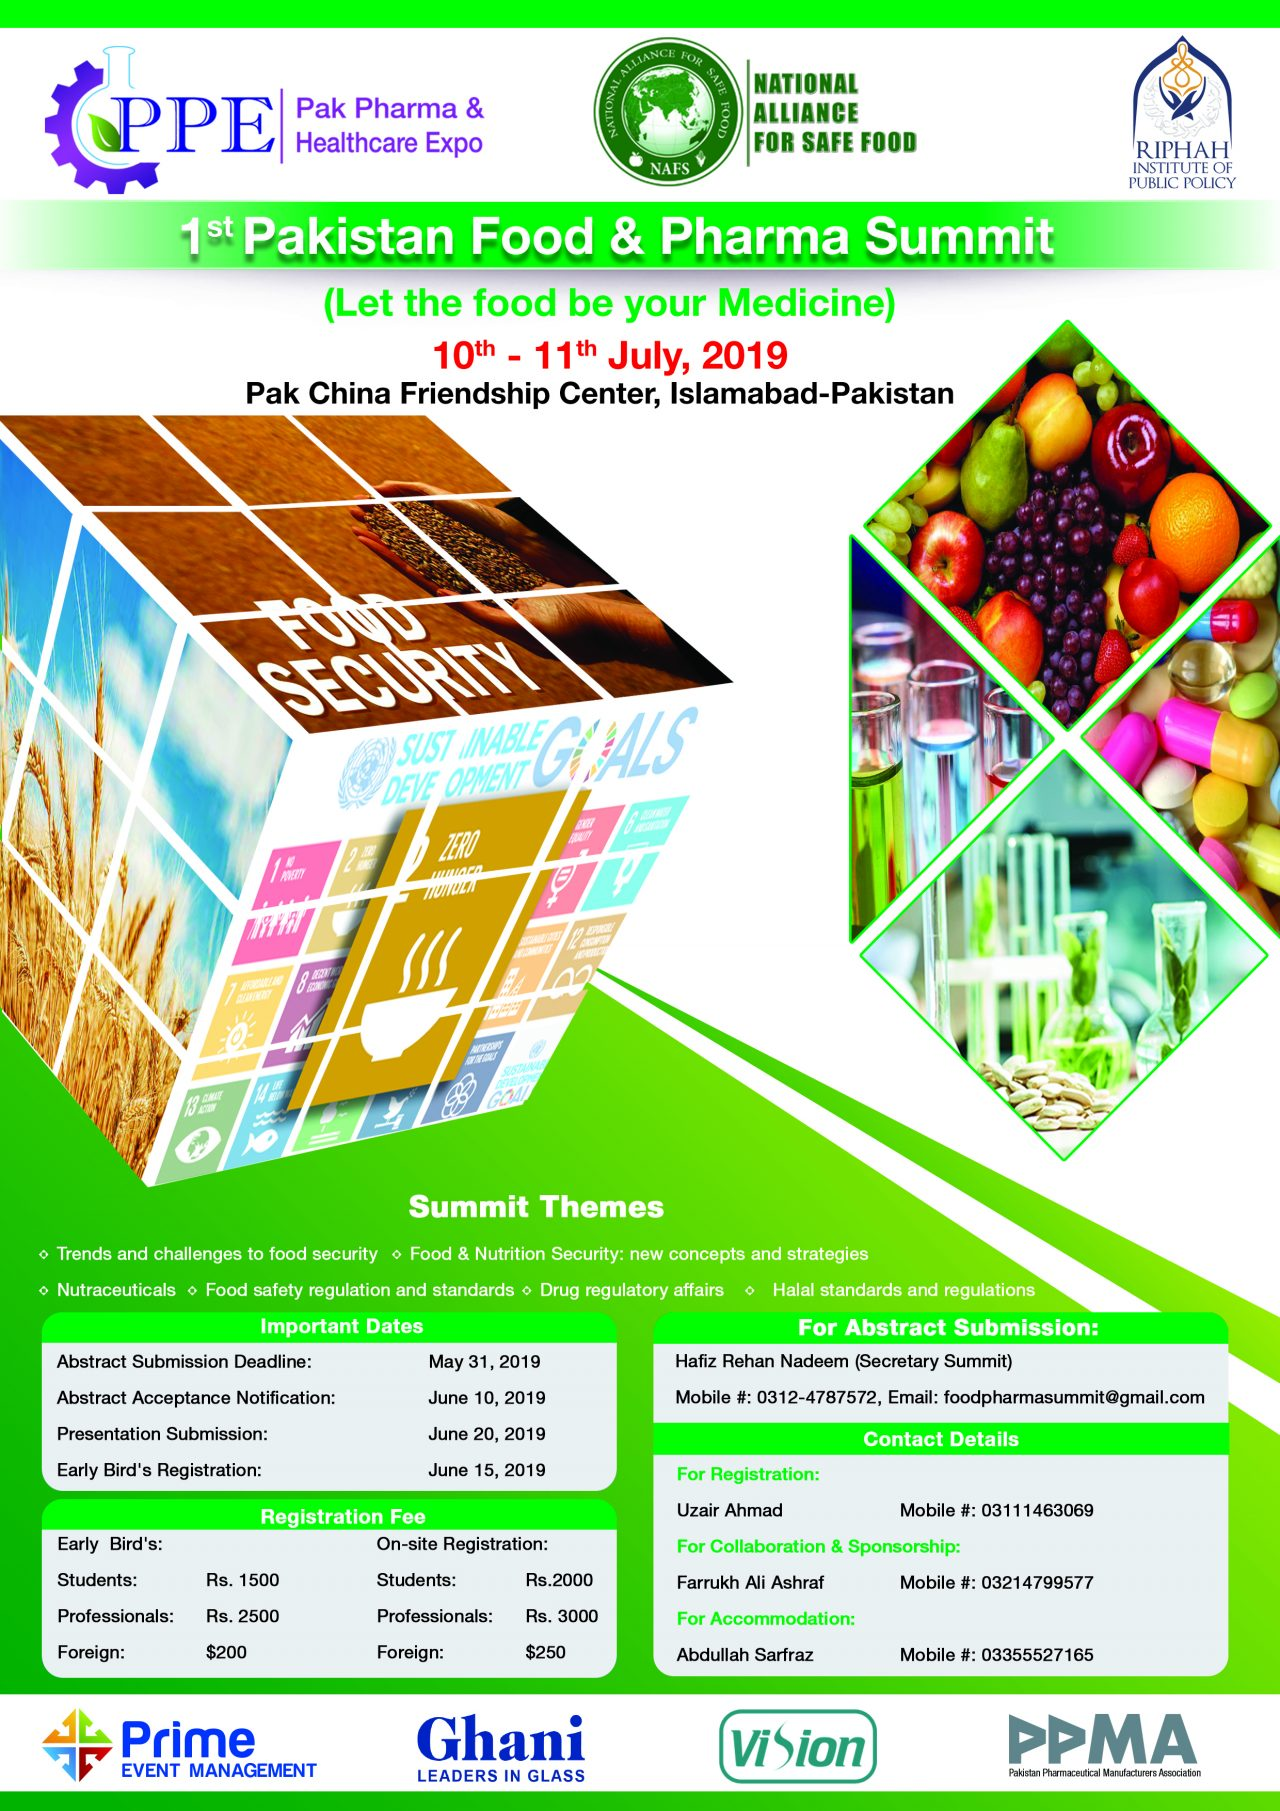 PAKISTAN FOOD & PHARMA SUMMIT Conference